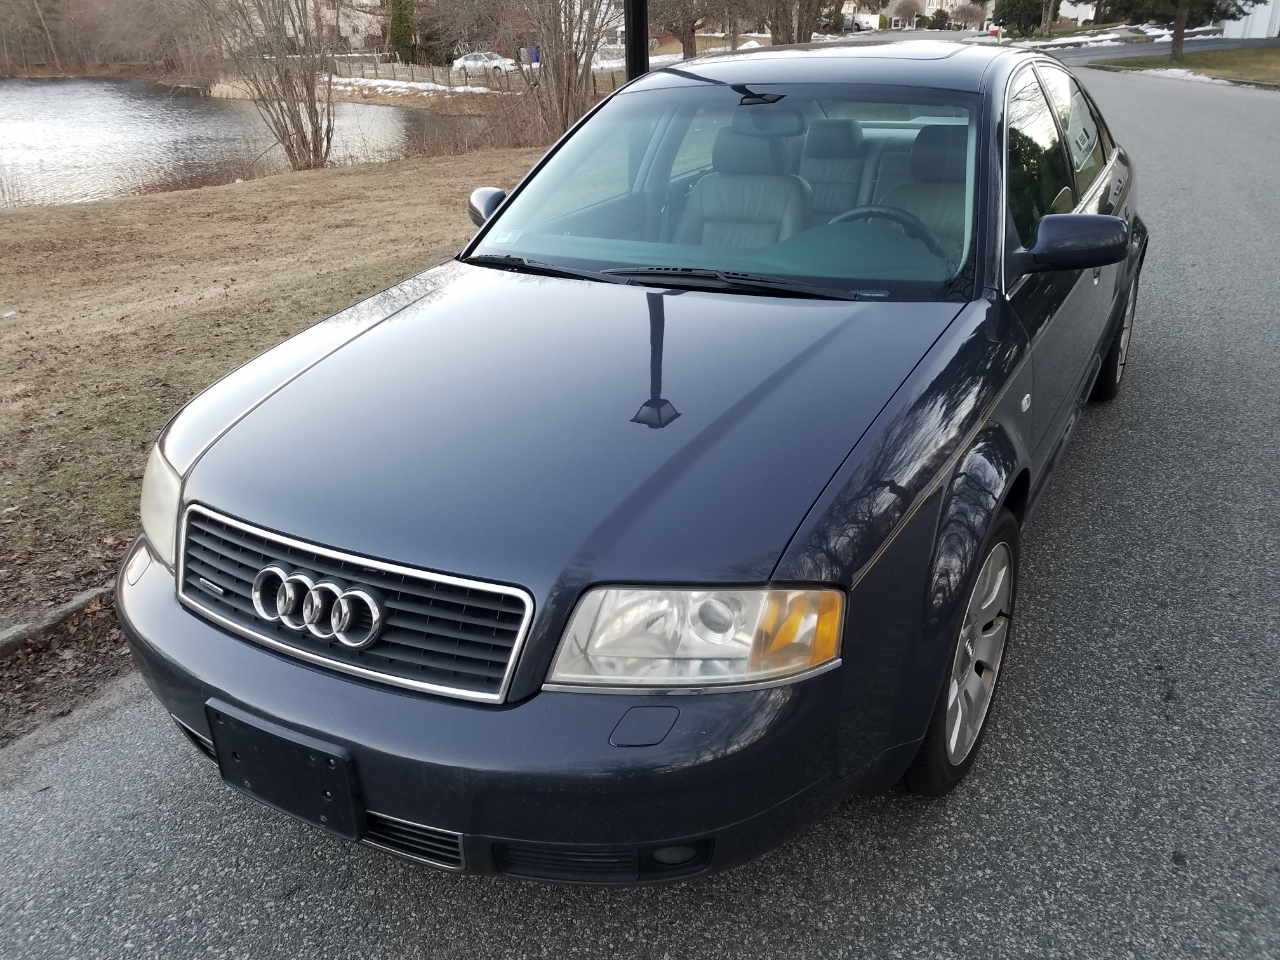 used 2001 audi a6 4 2 for sale in coventry ri 02816. Black Bedroom Furniture Sets. Home Design Ideas